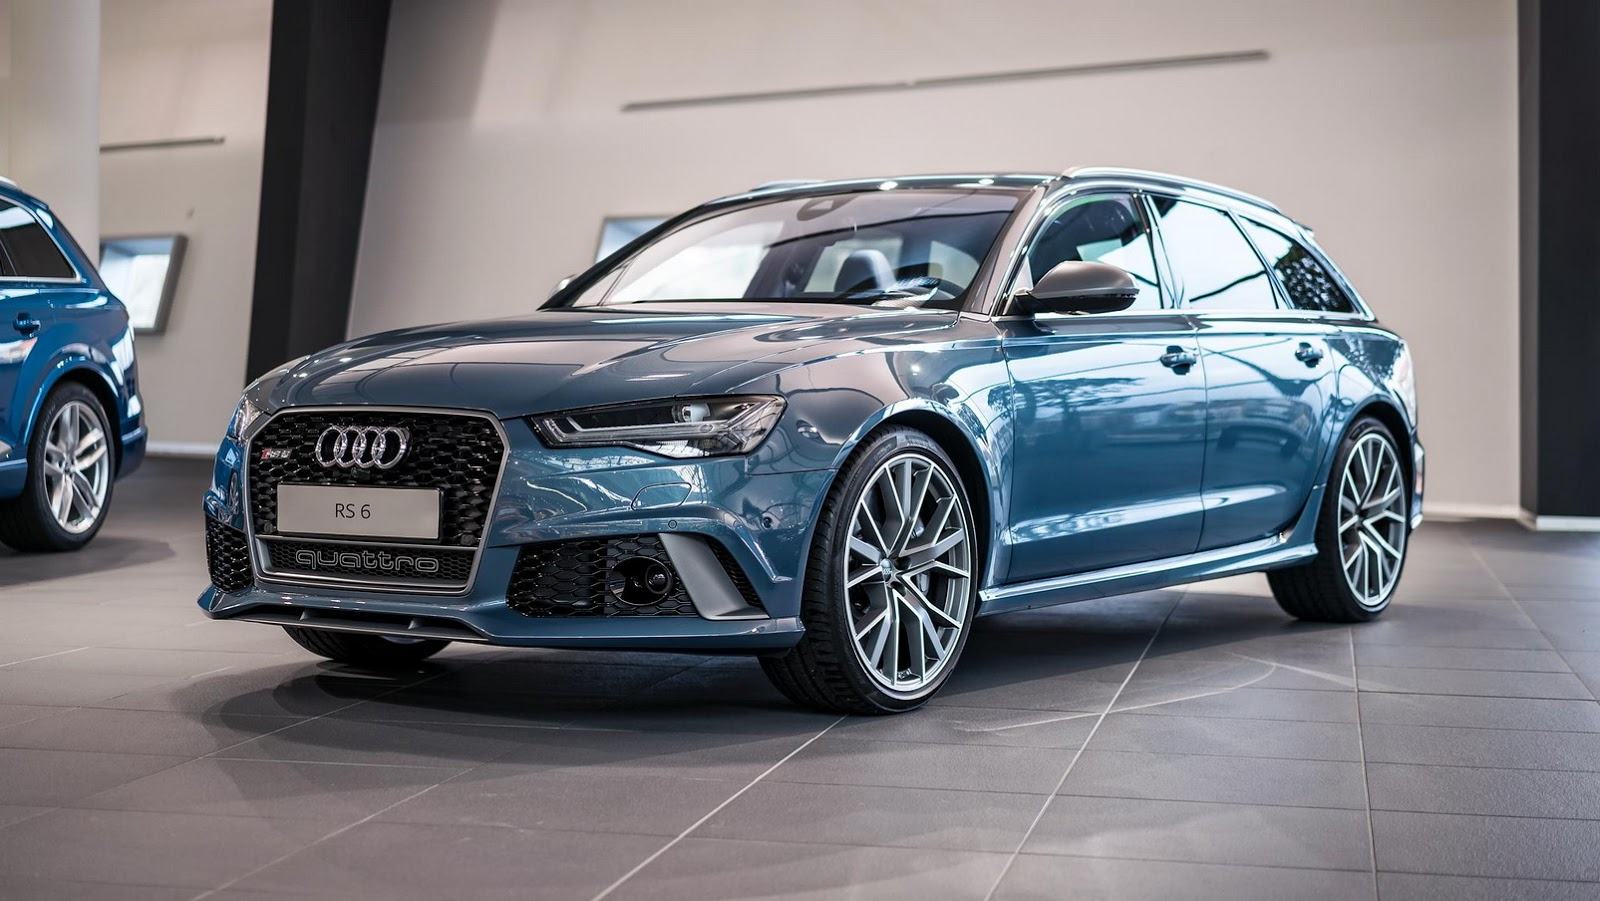 polar blue metallic rs6 avant by audi exclusive looks cool autoevolution. Black Bedroom Furniture Sets. Home Design Ideas